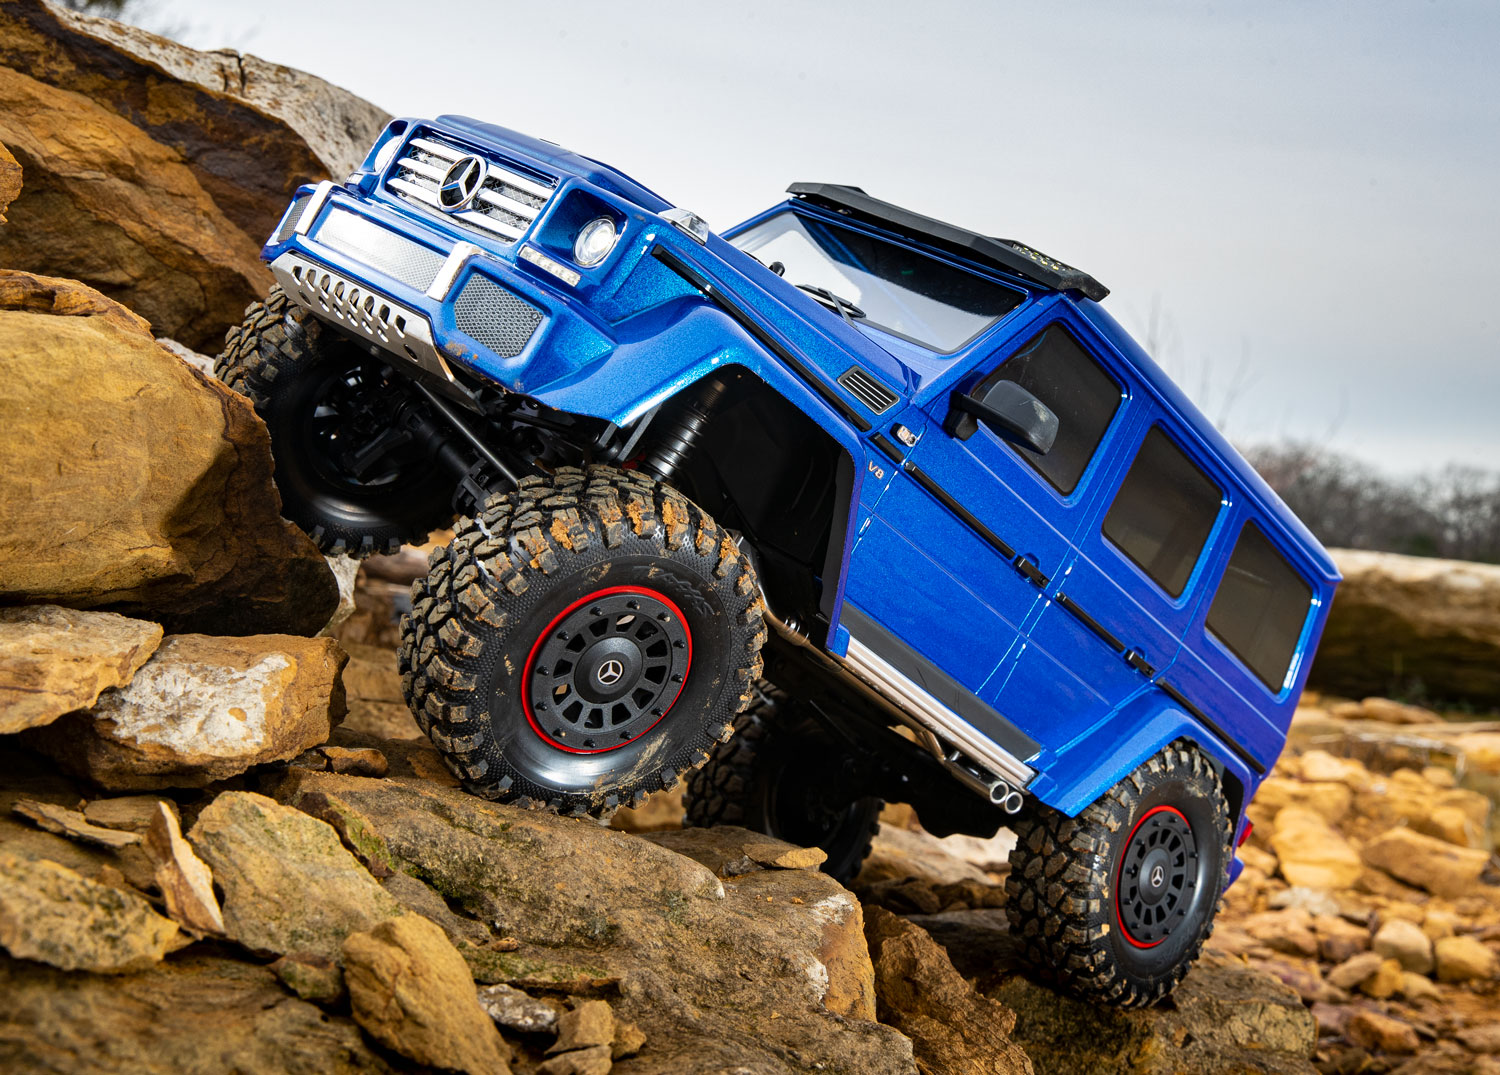 Blue G 500 on the rocks